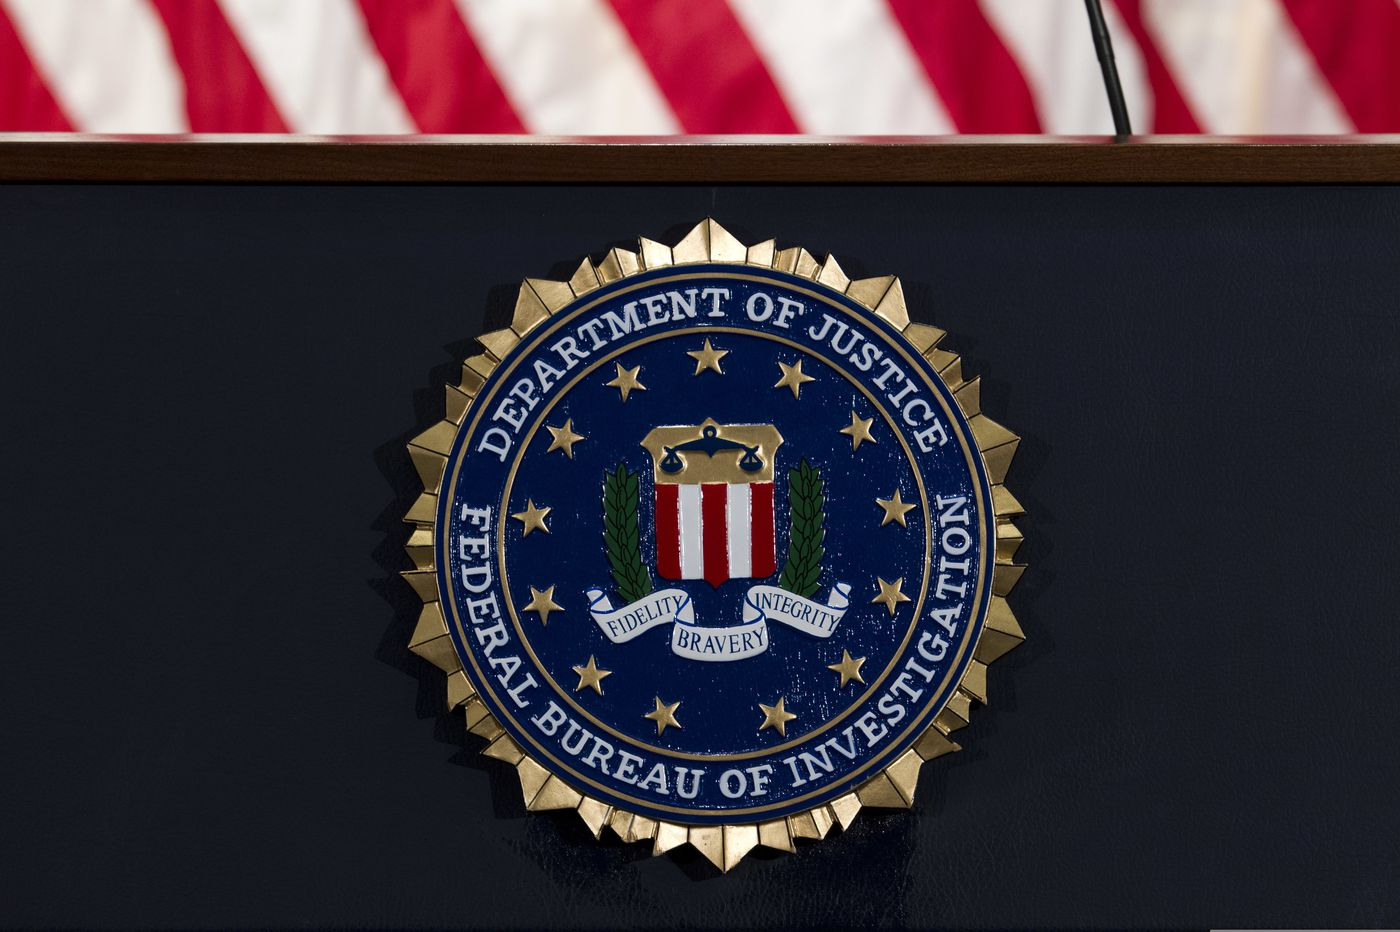 U.S. government says hacking of federal agencies 'likely Russian in origin'